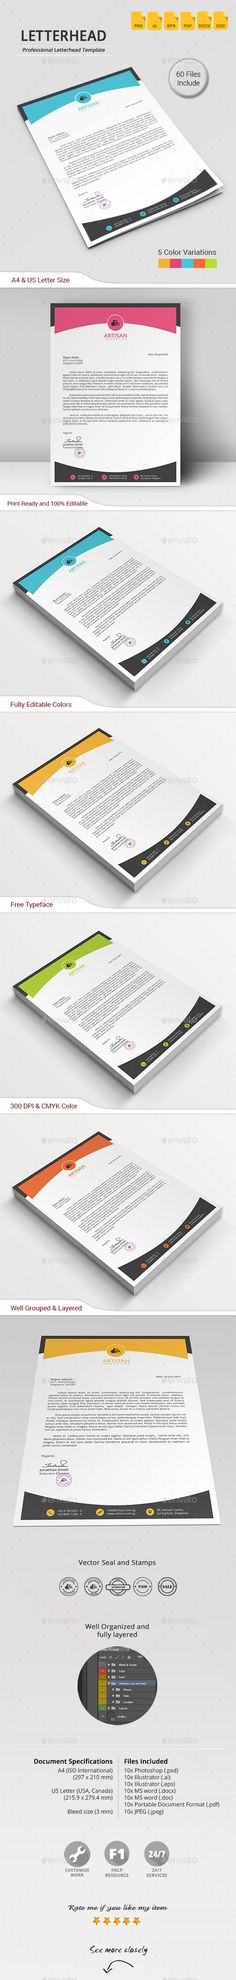 #Letterhead - #Stationery Print Templates Download here: https://graphicriver.net/item/letterhead/11767373?ref=alena994